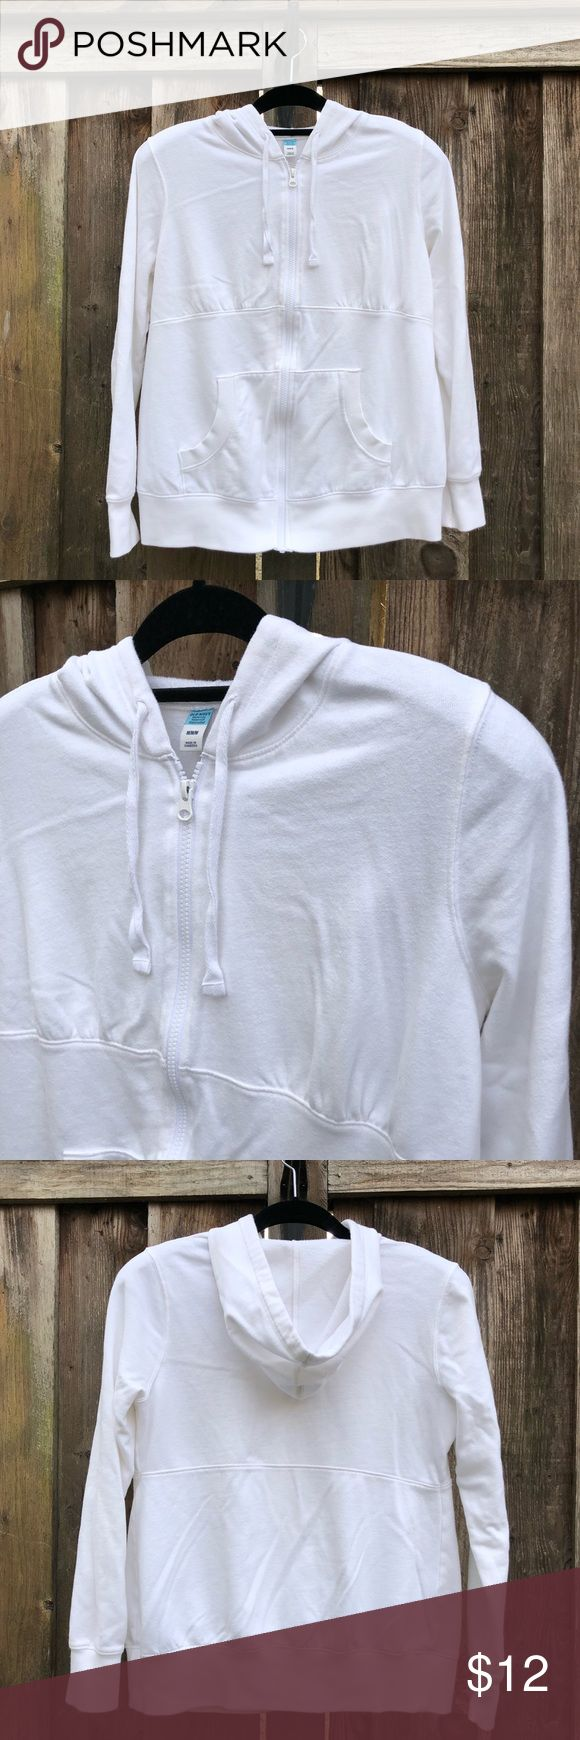 Old Navy, White, Zip-Up Hoodie, Maternity, M White Old Navy Zip-Up Maternity Hoodie.  60% Cotton, 40% Polyester. Machine wash.  Gently worn. Great condition. Old Navy Tops Sweatshirts & Hoodies